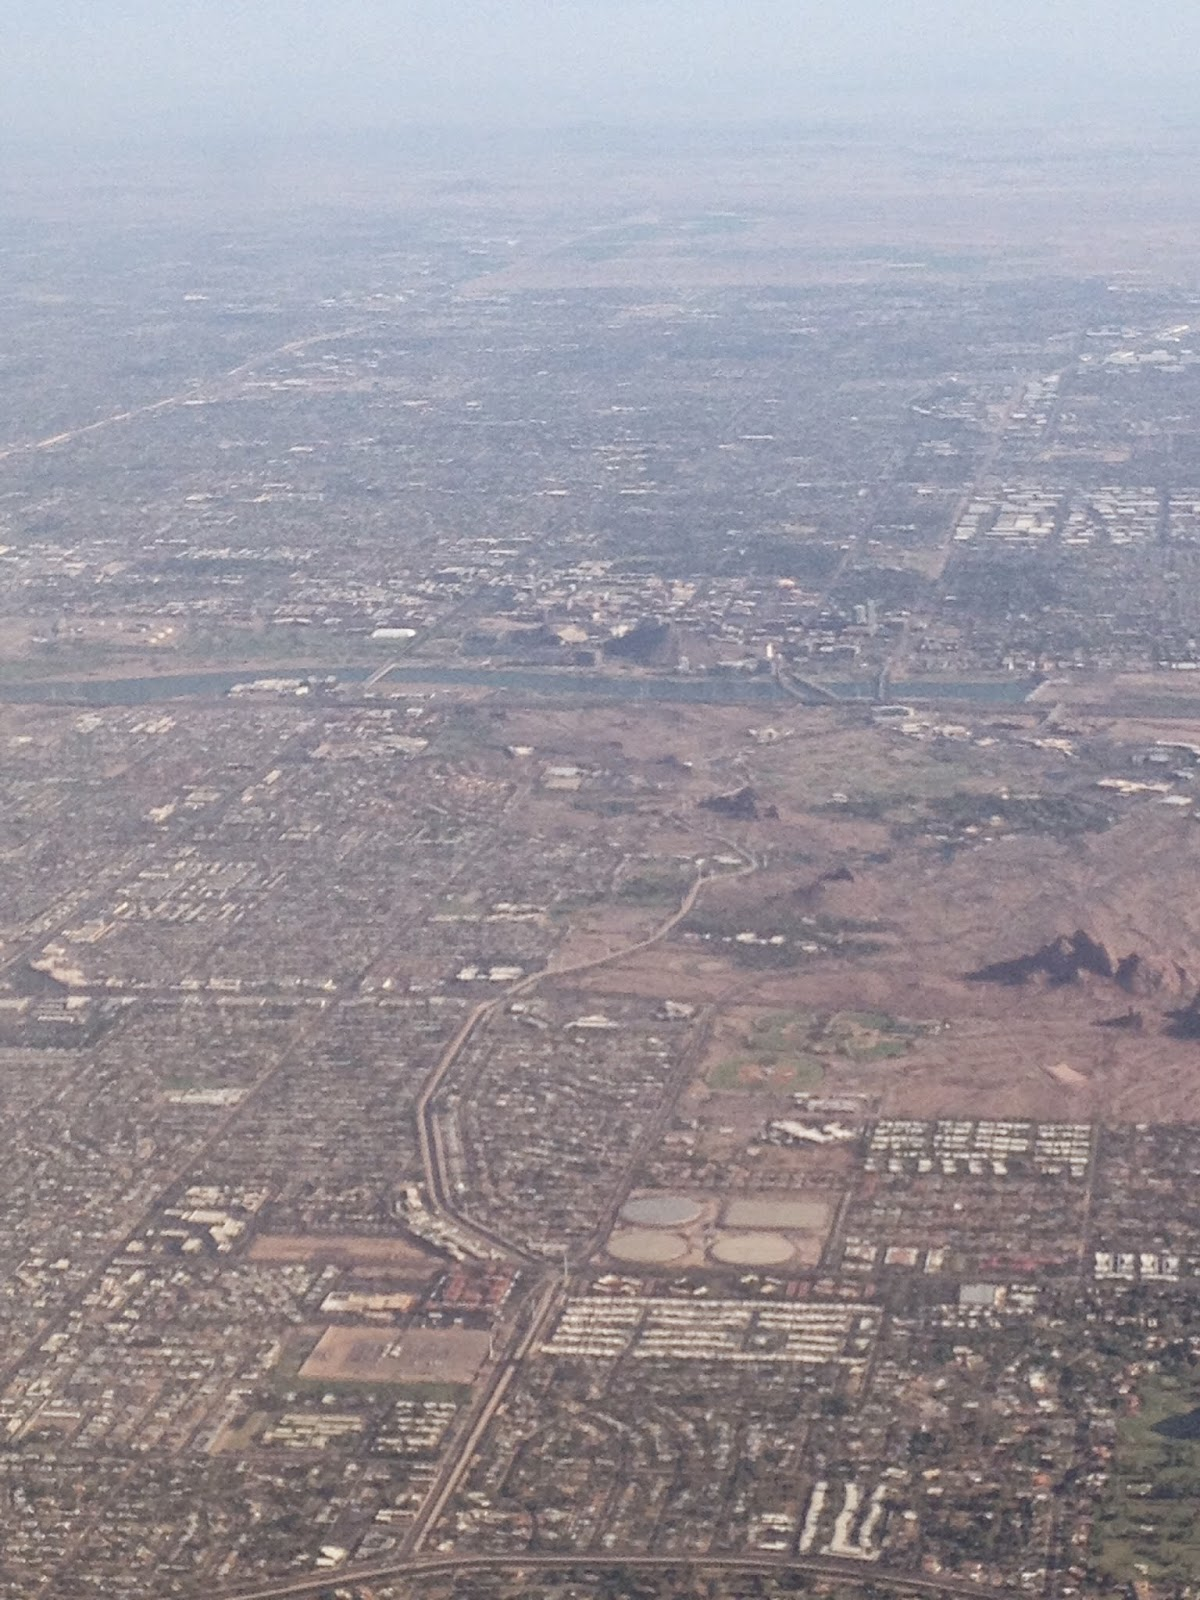 Phoenix from the air (photo credit: http://researchandramblings.blogspot.com/)